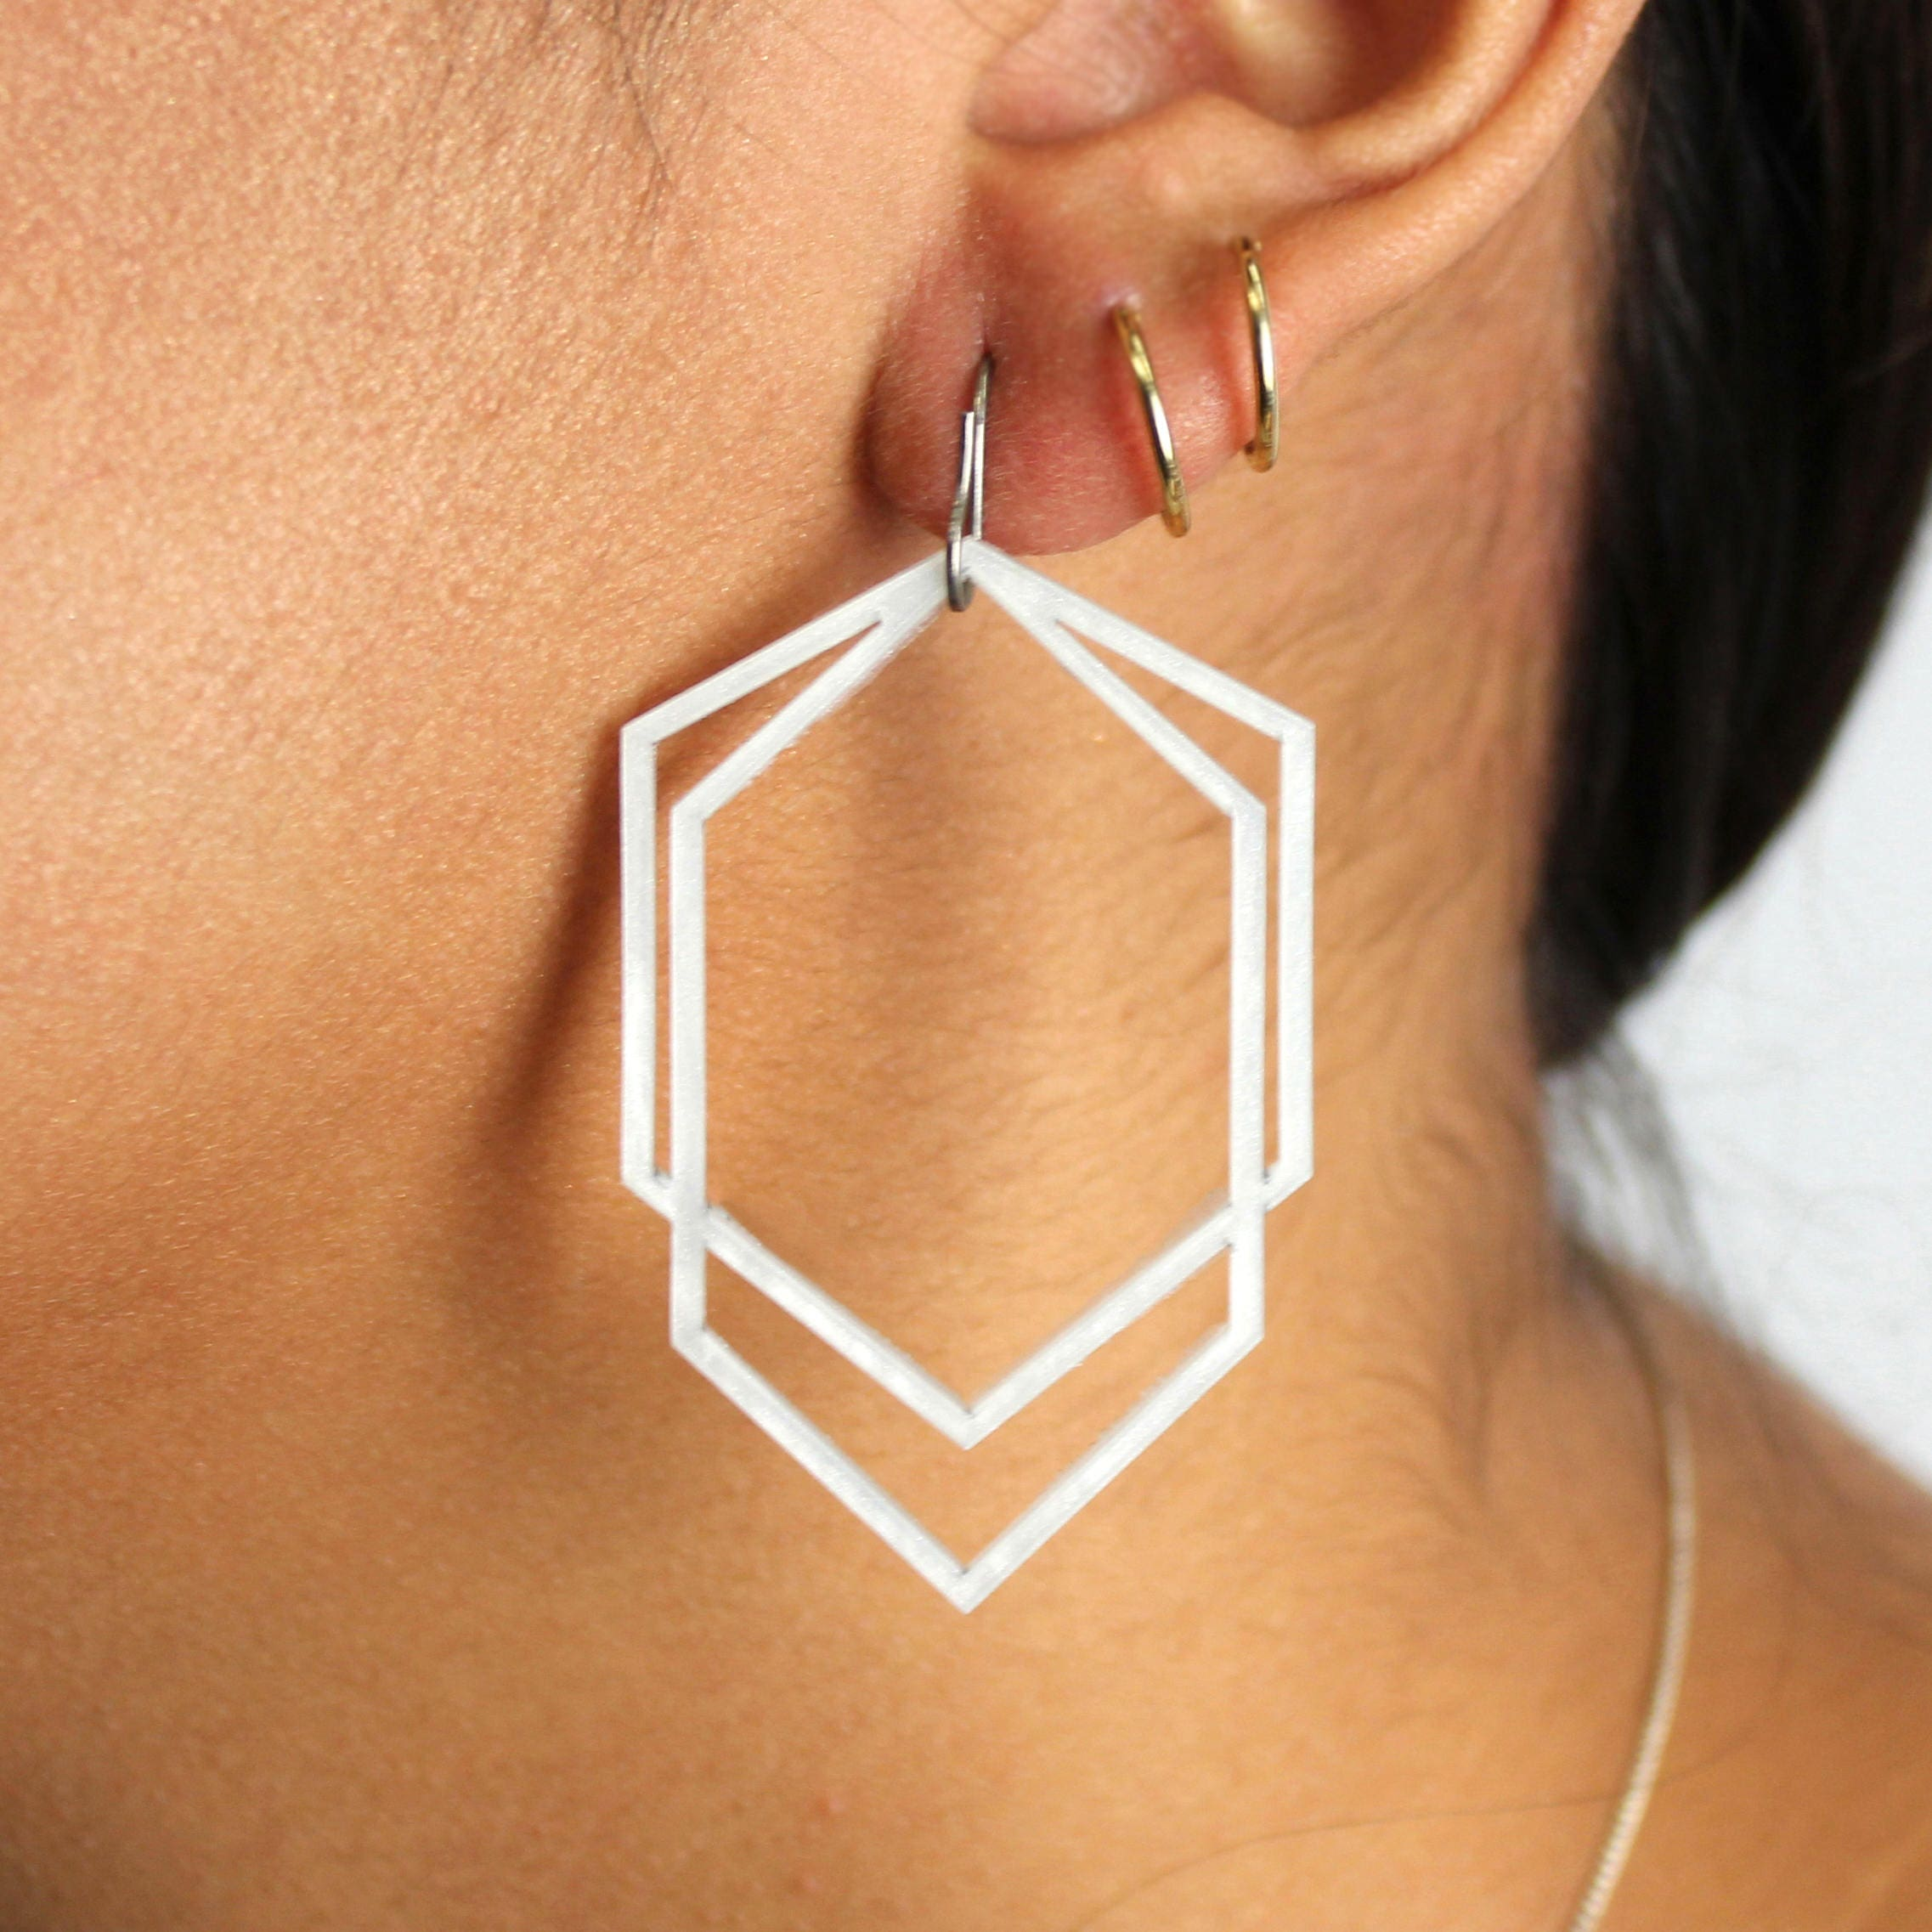 hexagon claire earrings s silver tone hoop